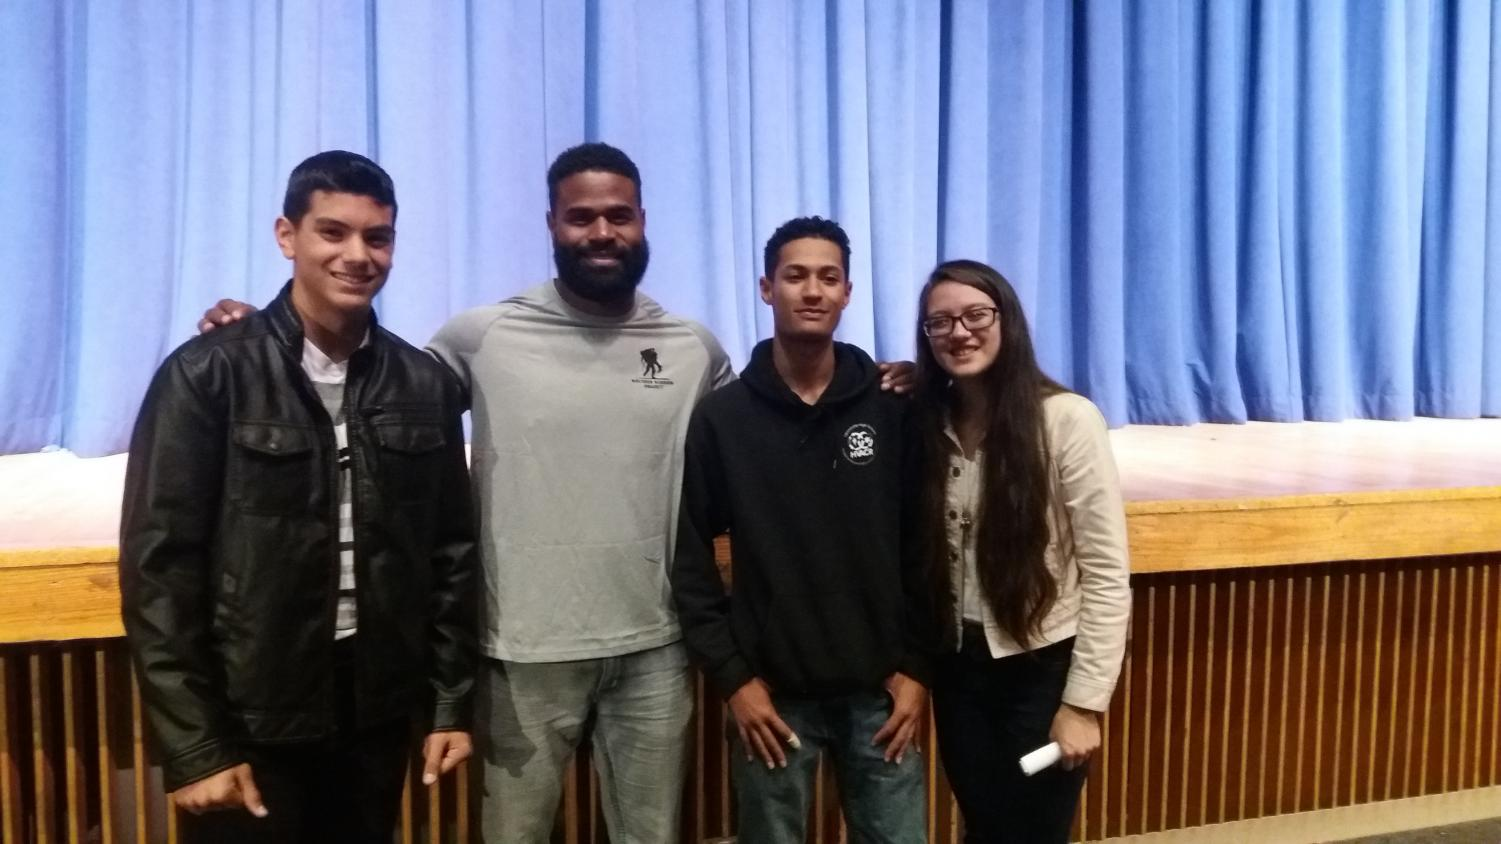 Former NFL running back William Green(second from the left) stands with LHS FCA members (In order from left) Junior Dan Garcia, Junior Lucrecia Acosta, and Junior Damian Regalado.